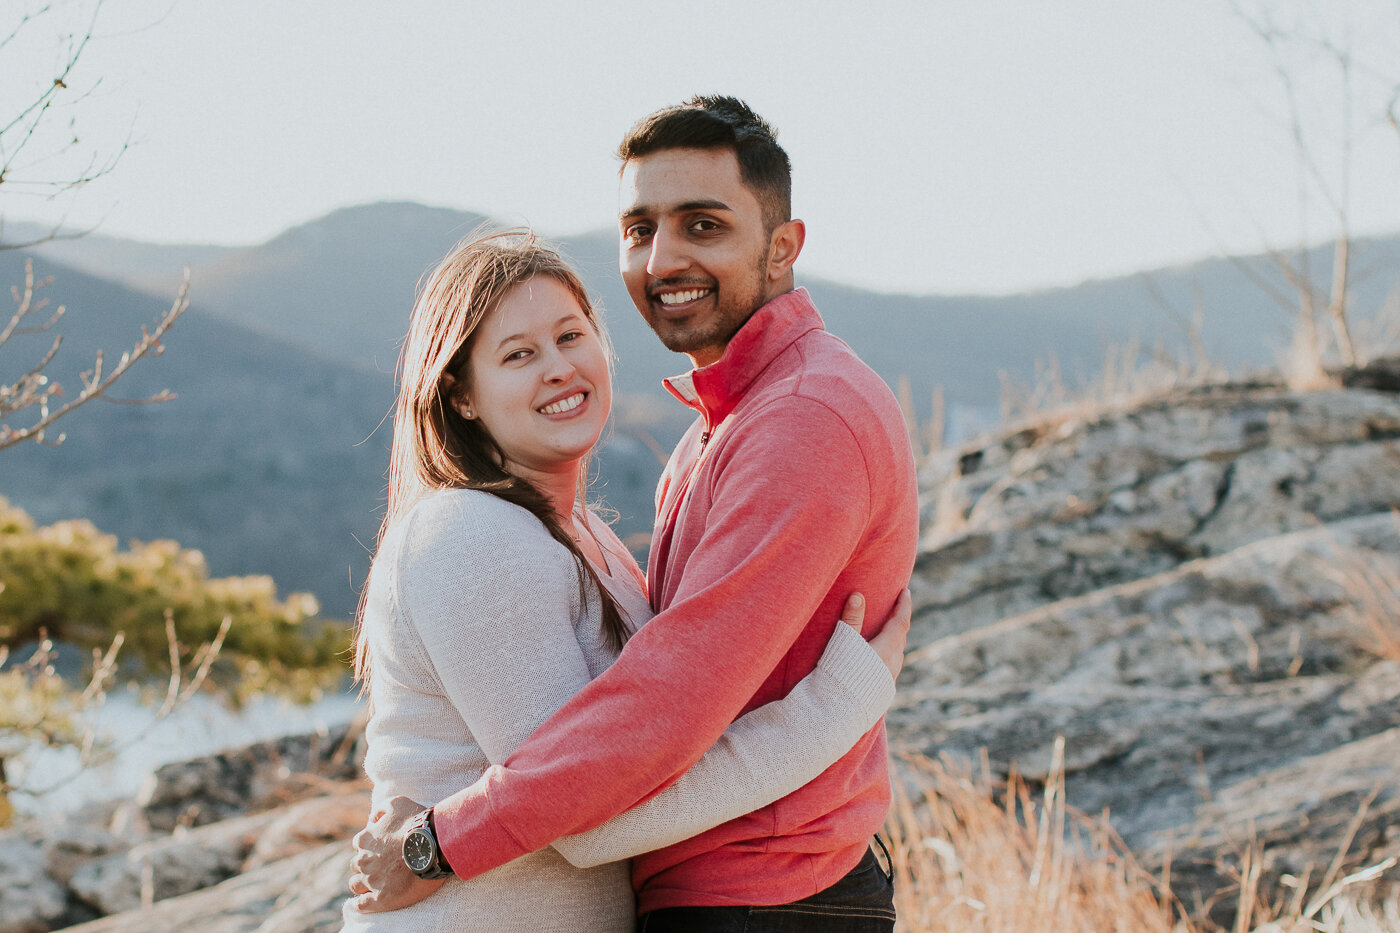 BearMountainStateParkEngagmentPhotos-35.jpg